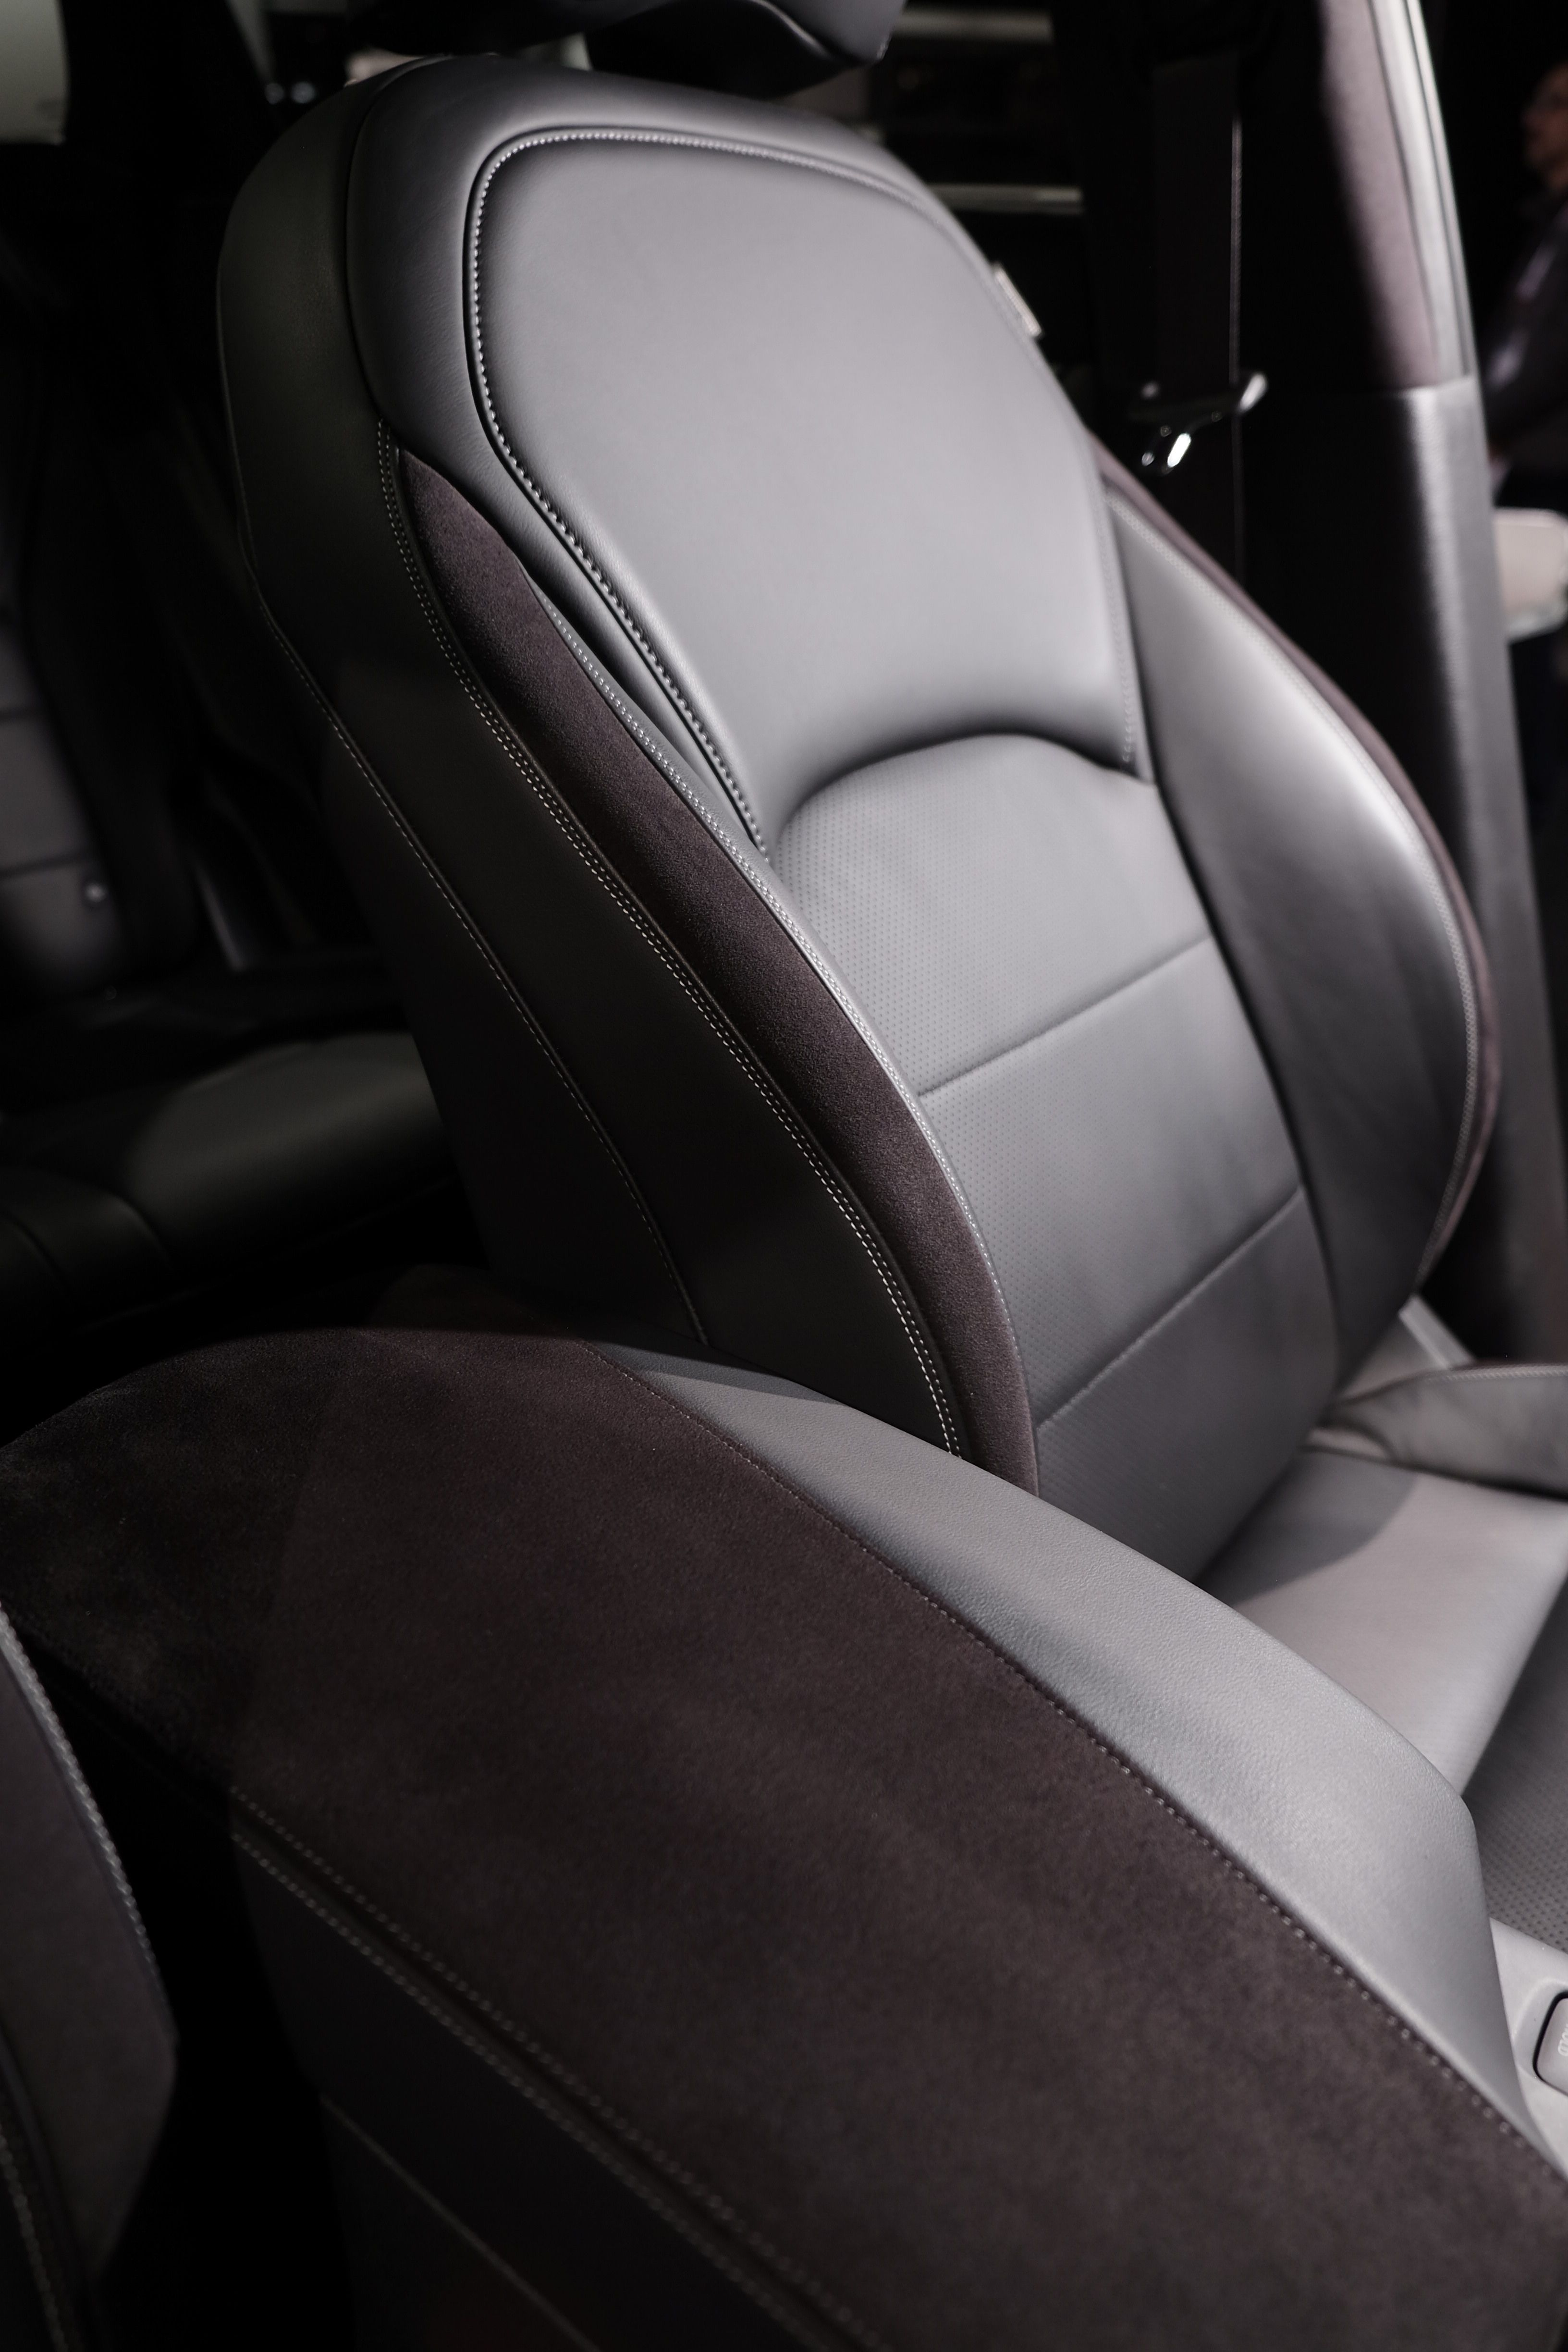 Ultrasuede For Automotive Upholstery And Interiors Automotive Upholstery Custom Car Seats Automotive Seat Covers